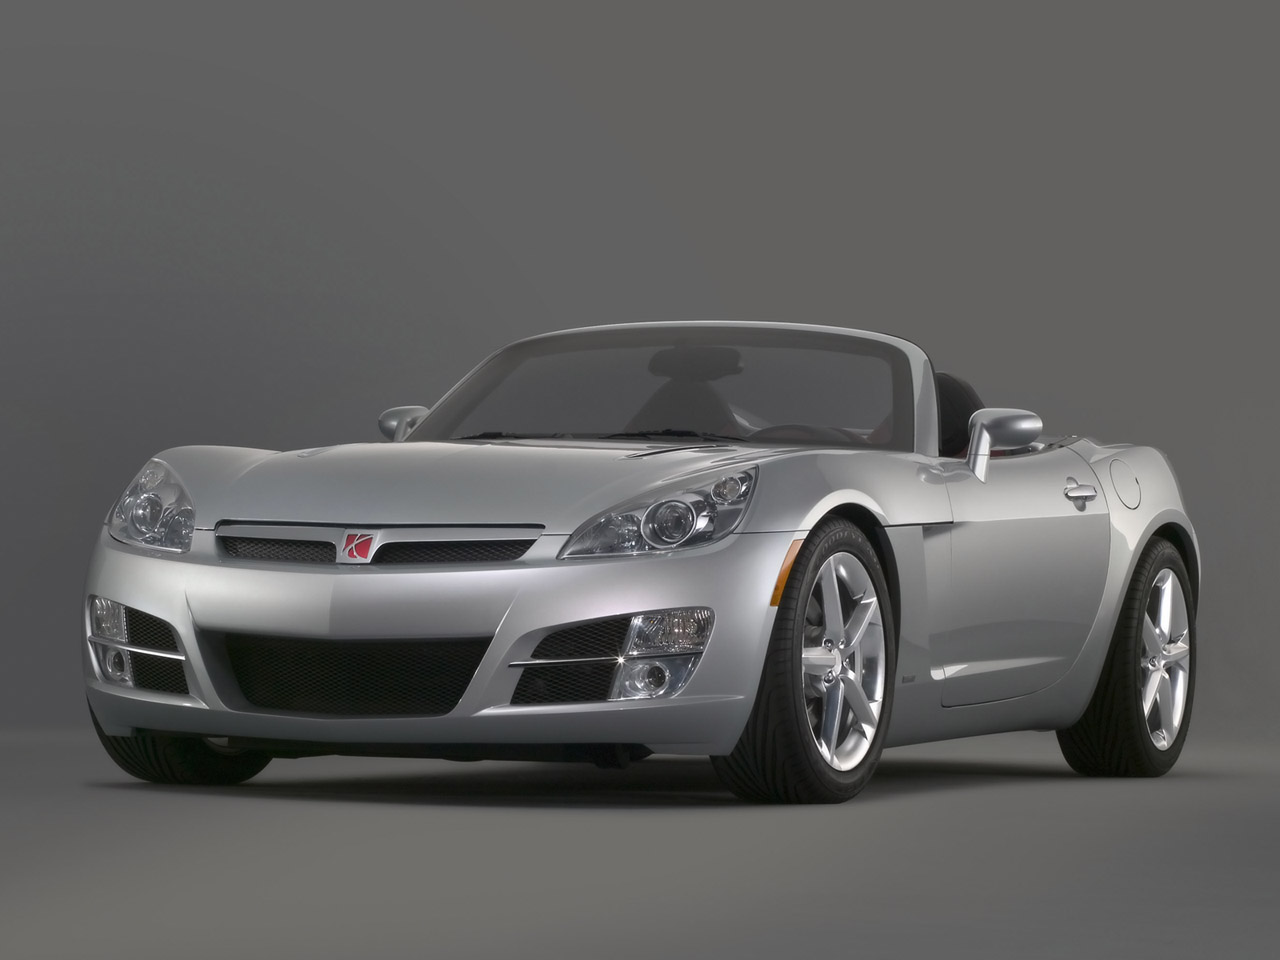 Picture of 2007 Saturn Sky Roadster